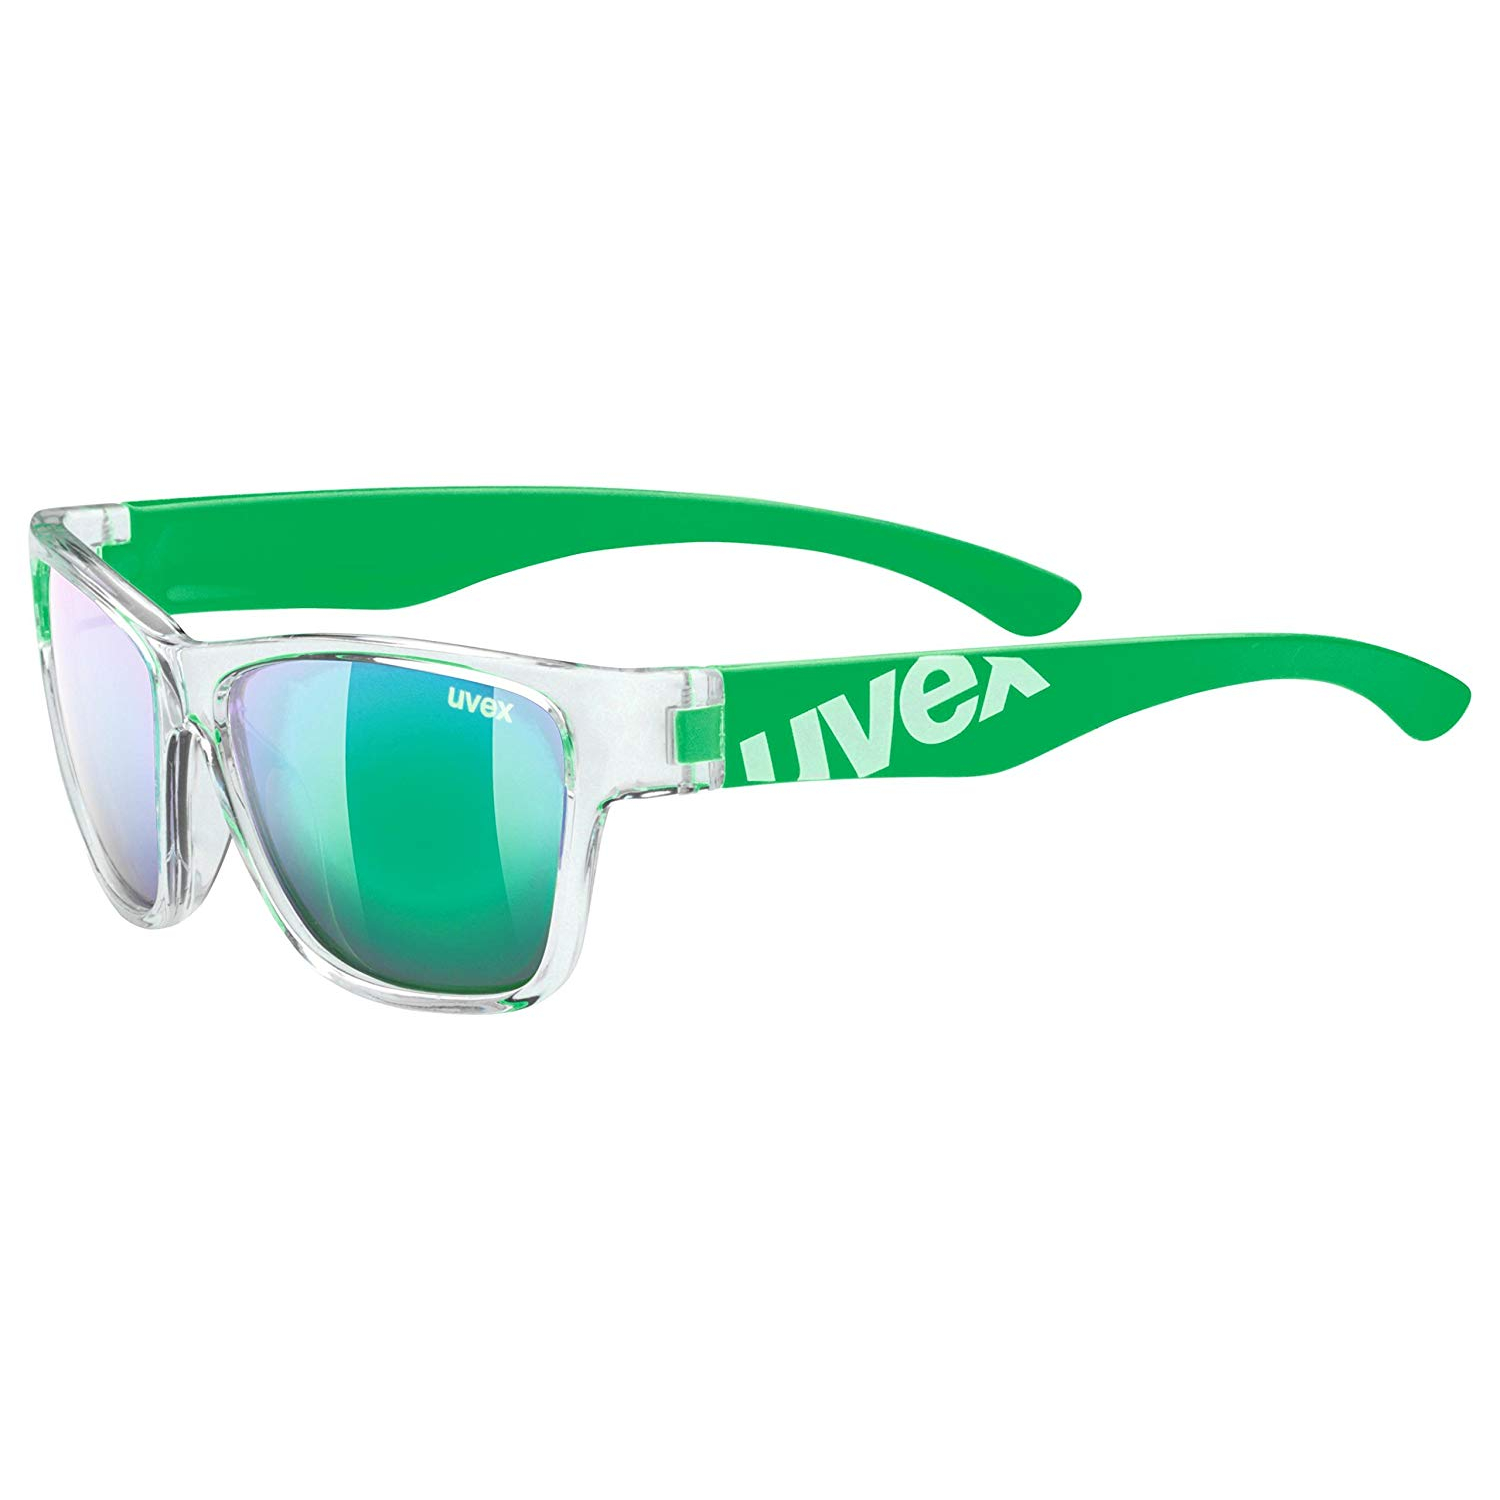 Uvex sportstyle 508 clear green / mir.green Kinder Sportbrille